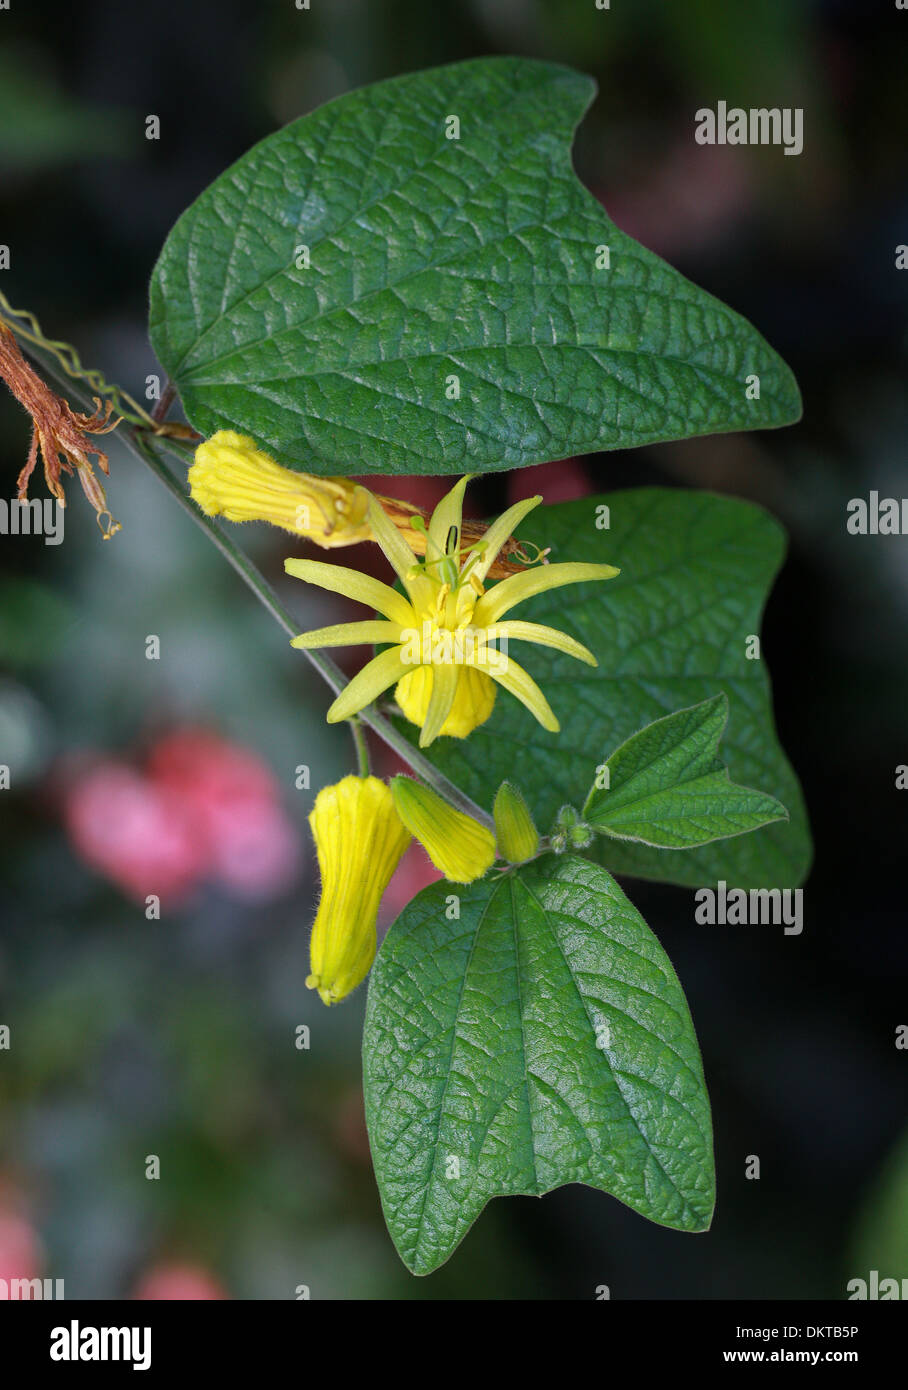 Citrus Yellow Passion Flower Passionflower Passion Vine Stock